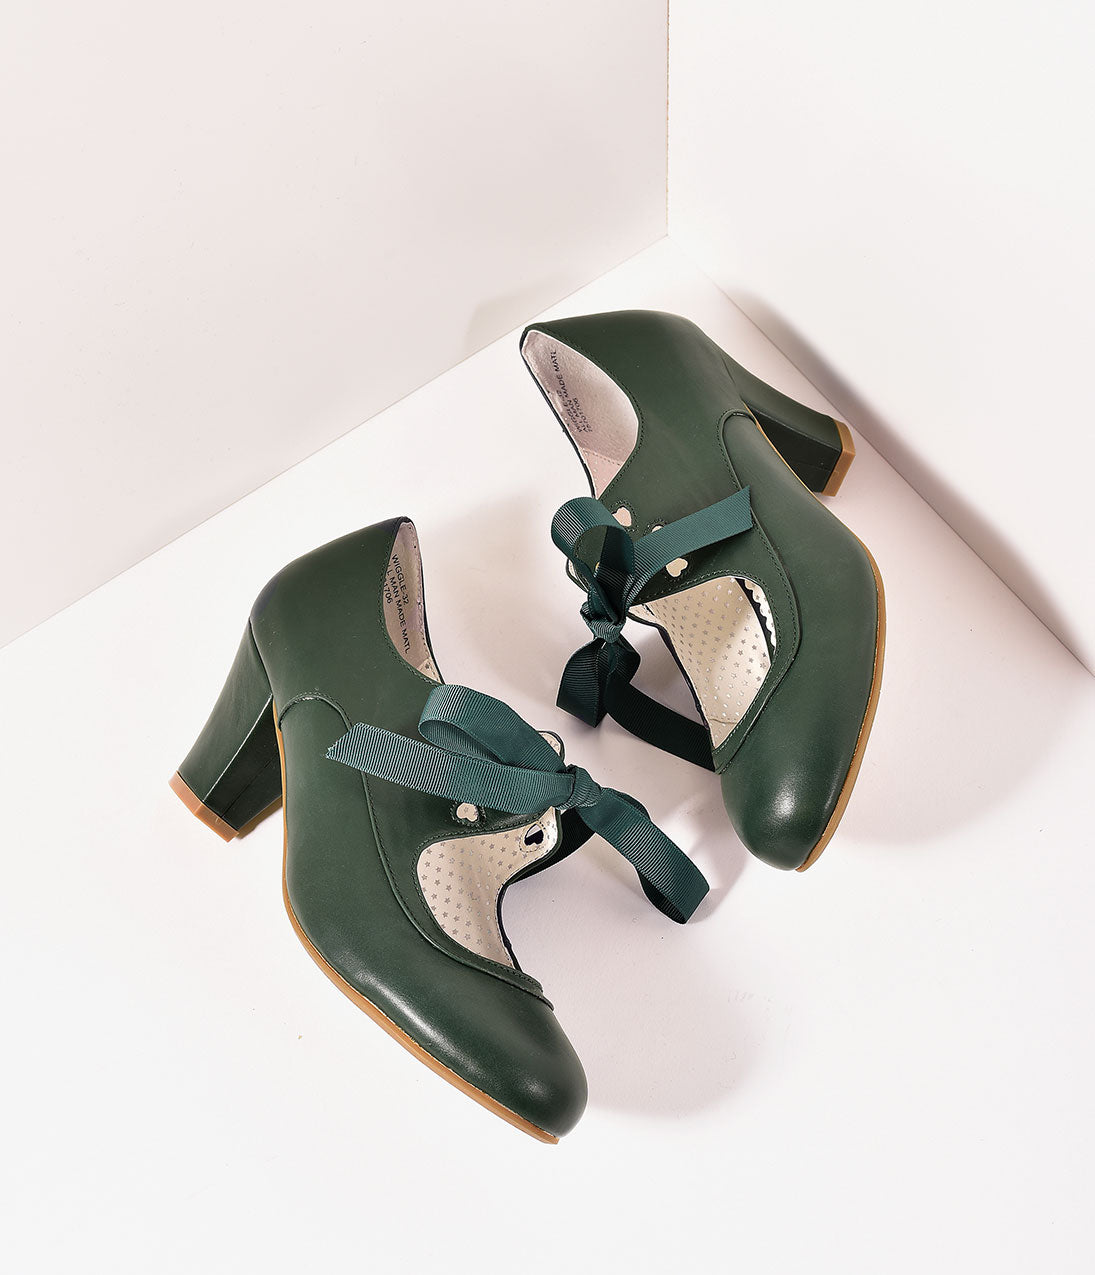 Vintage Heels, Retro Heels, Pumps, Shoes Vintage Style Emerald Green Leatherette Mary Jane Bow Wiggle Heels $66.00 AT vintagedancer.com